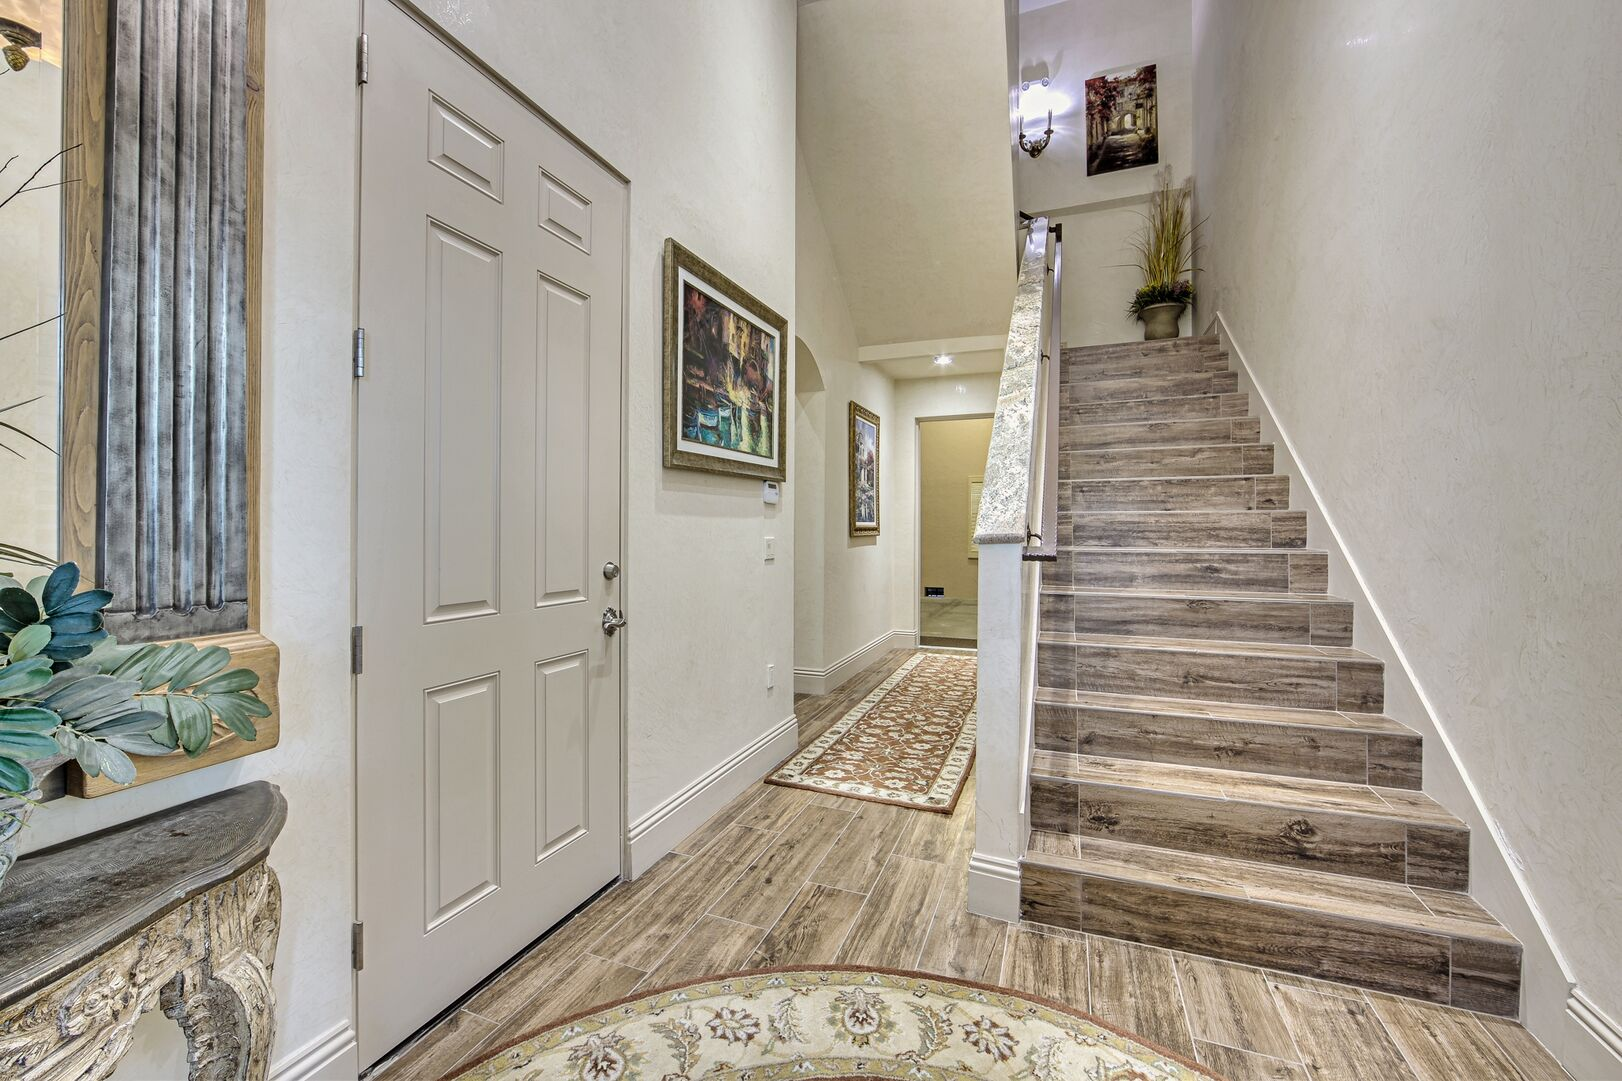 Picture of the Downstairs Hallway of Our Vacation Home.